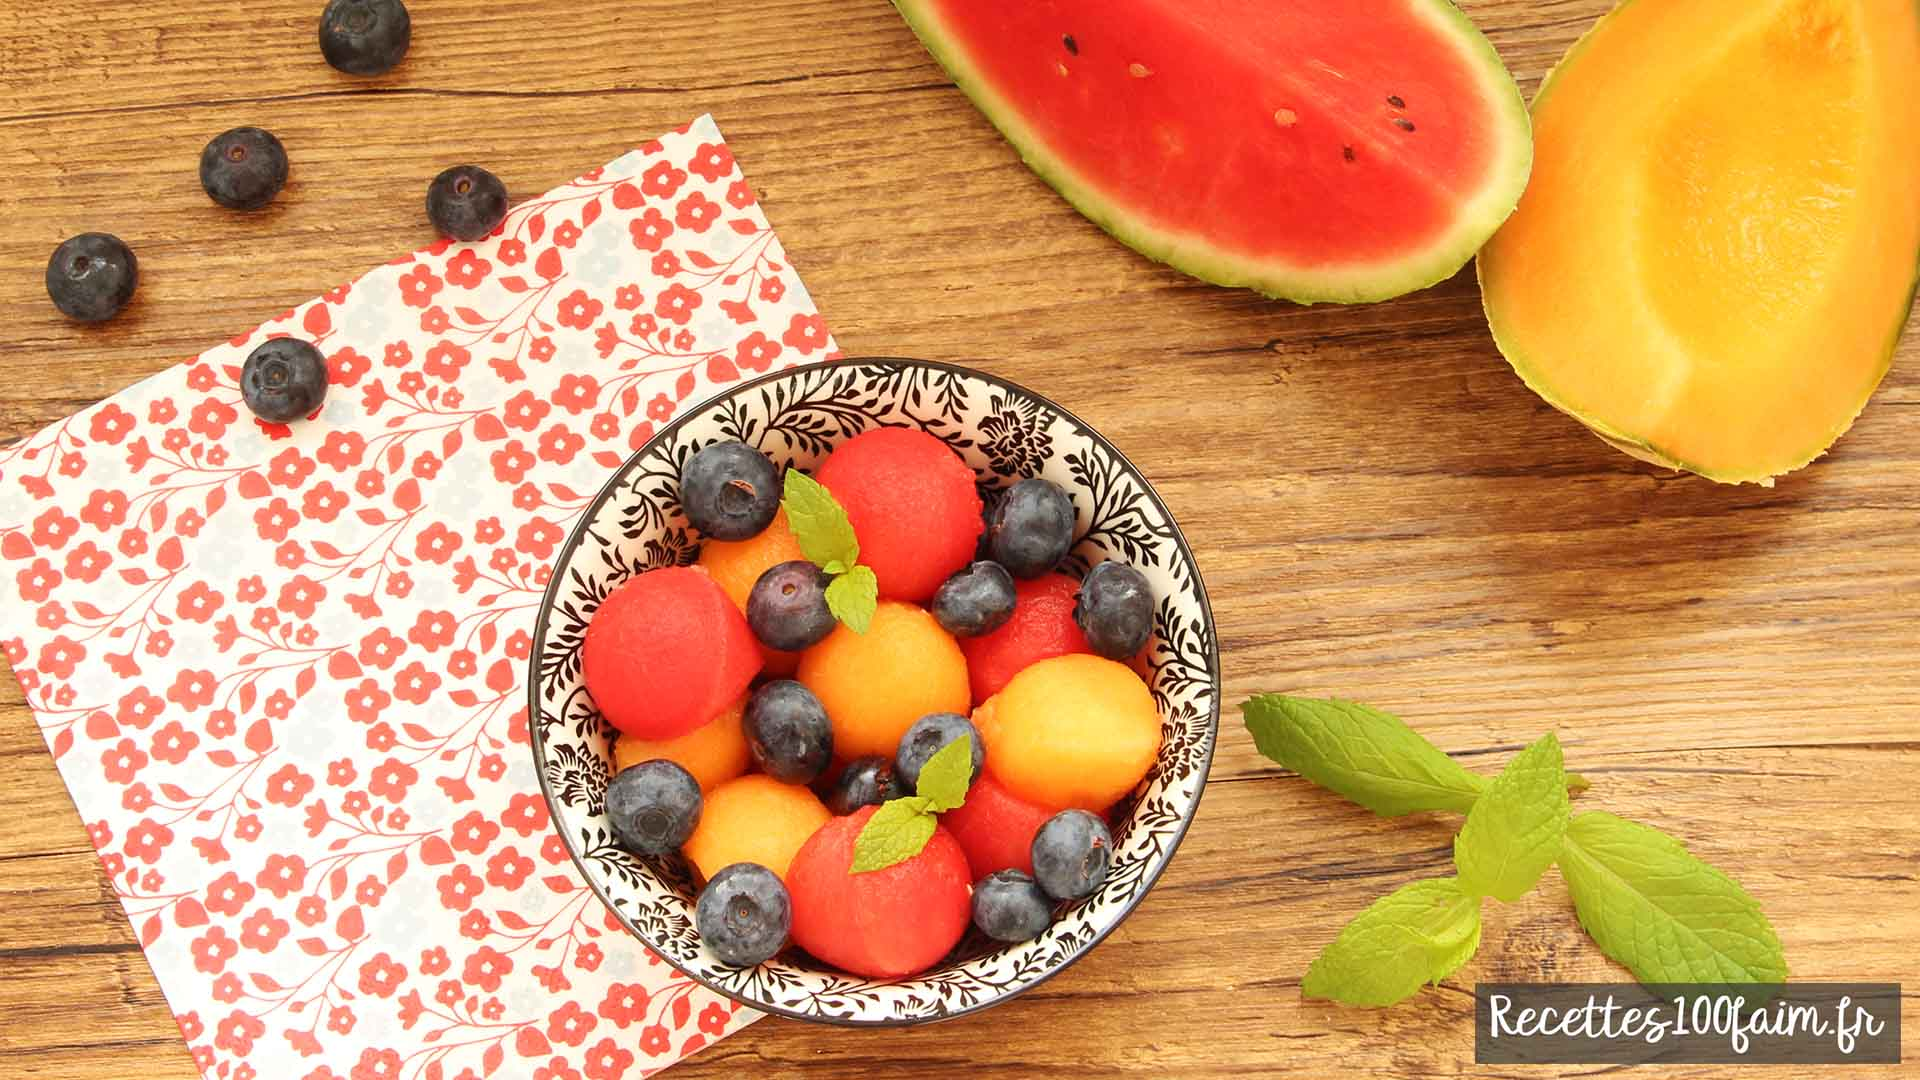 Recette de salade de fruits melon pasteque myrtille